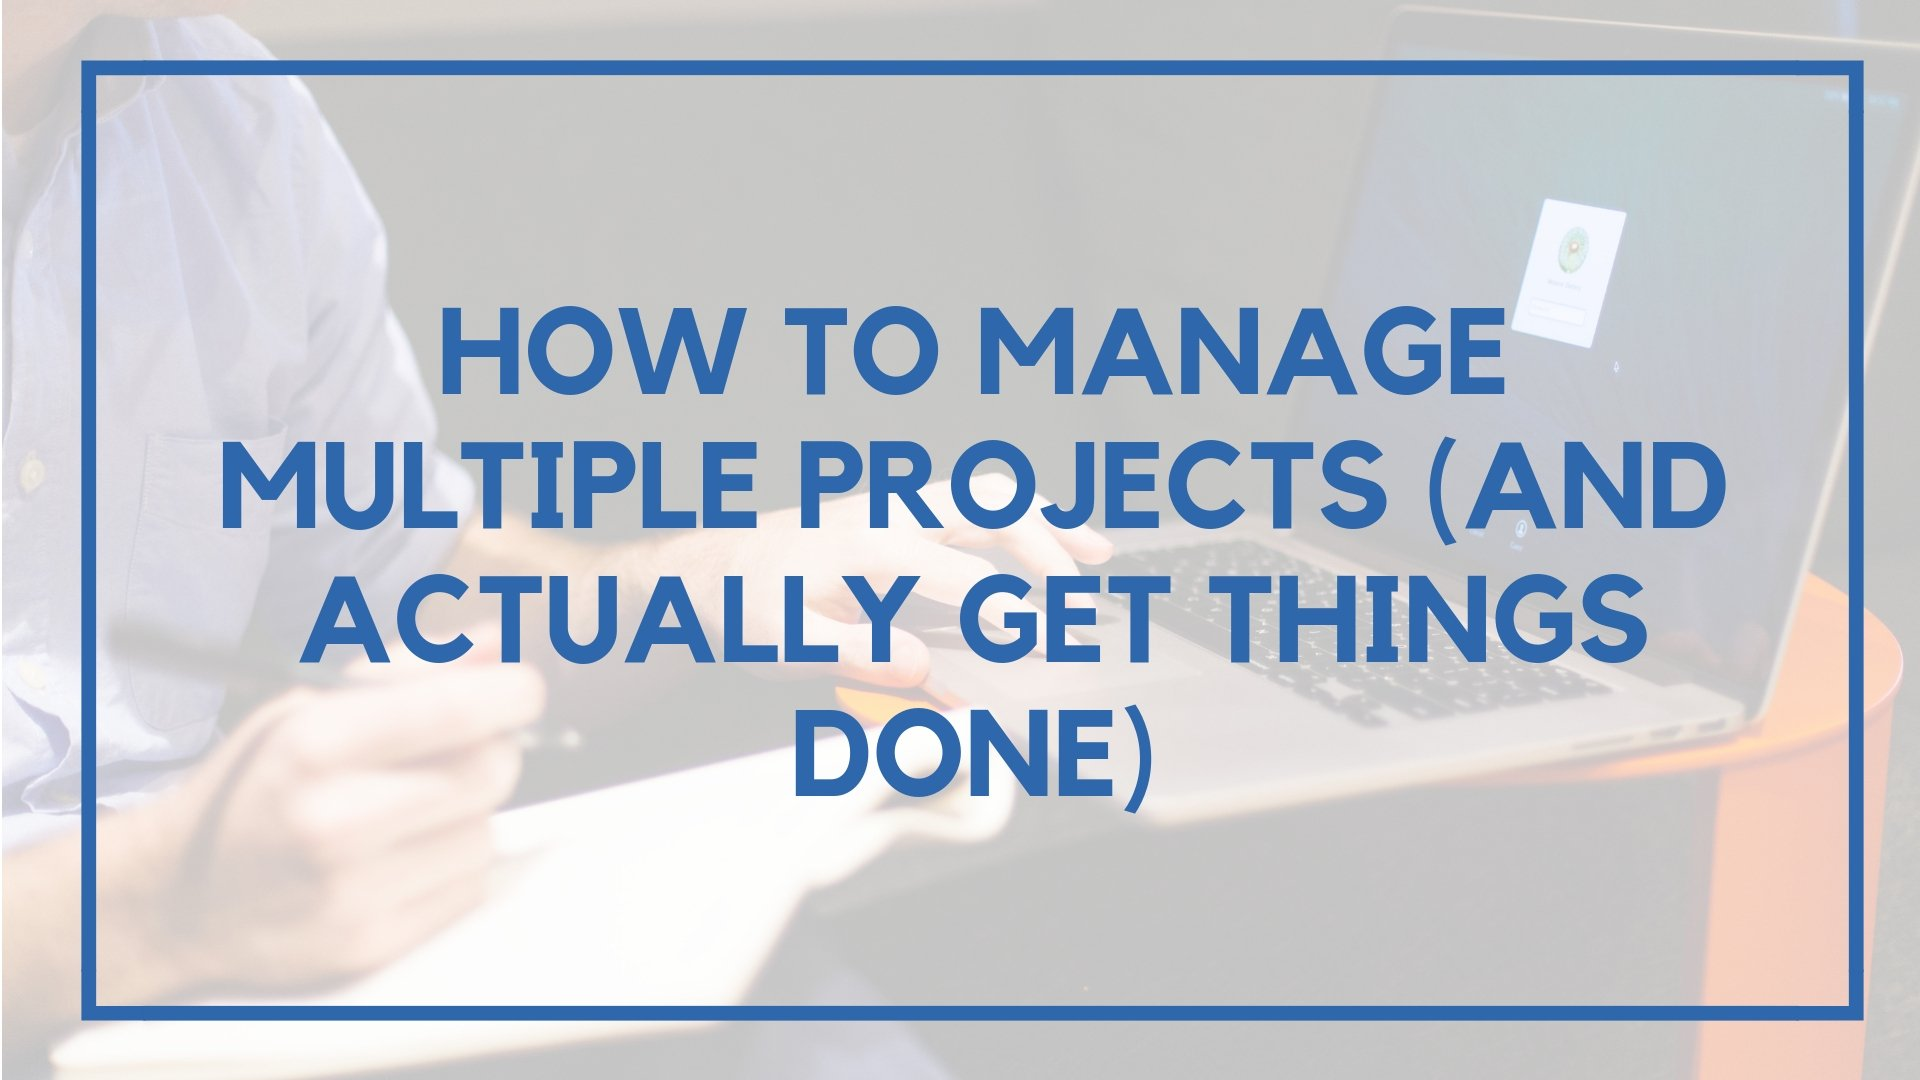 How to Manage Multiple Projects (And Actually Get Things Done)